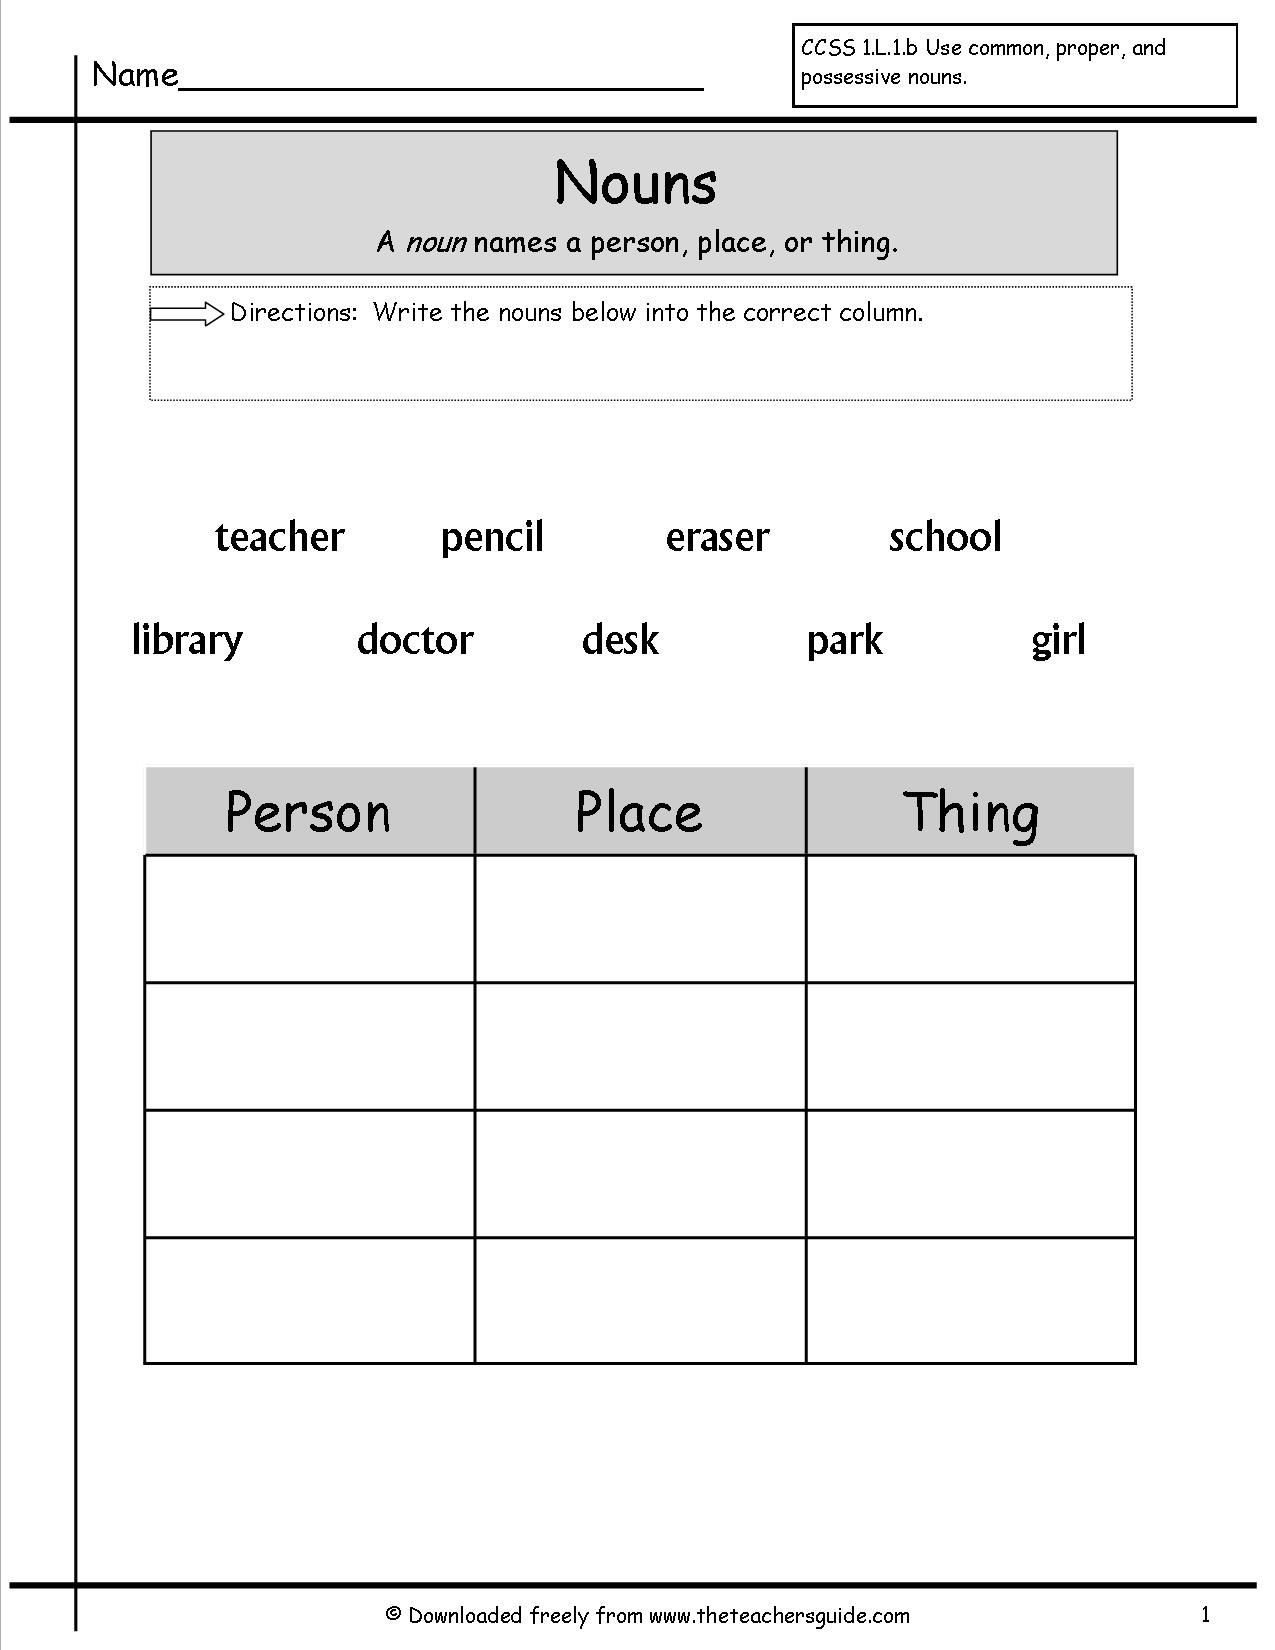 Free Proper Noun Worksheets Free Grammar and Language Arts From the Teacher S Guide